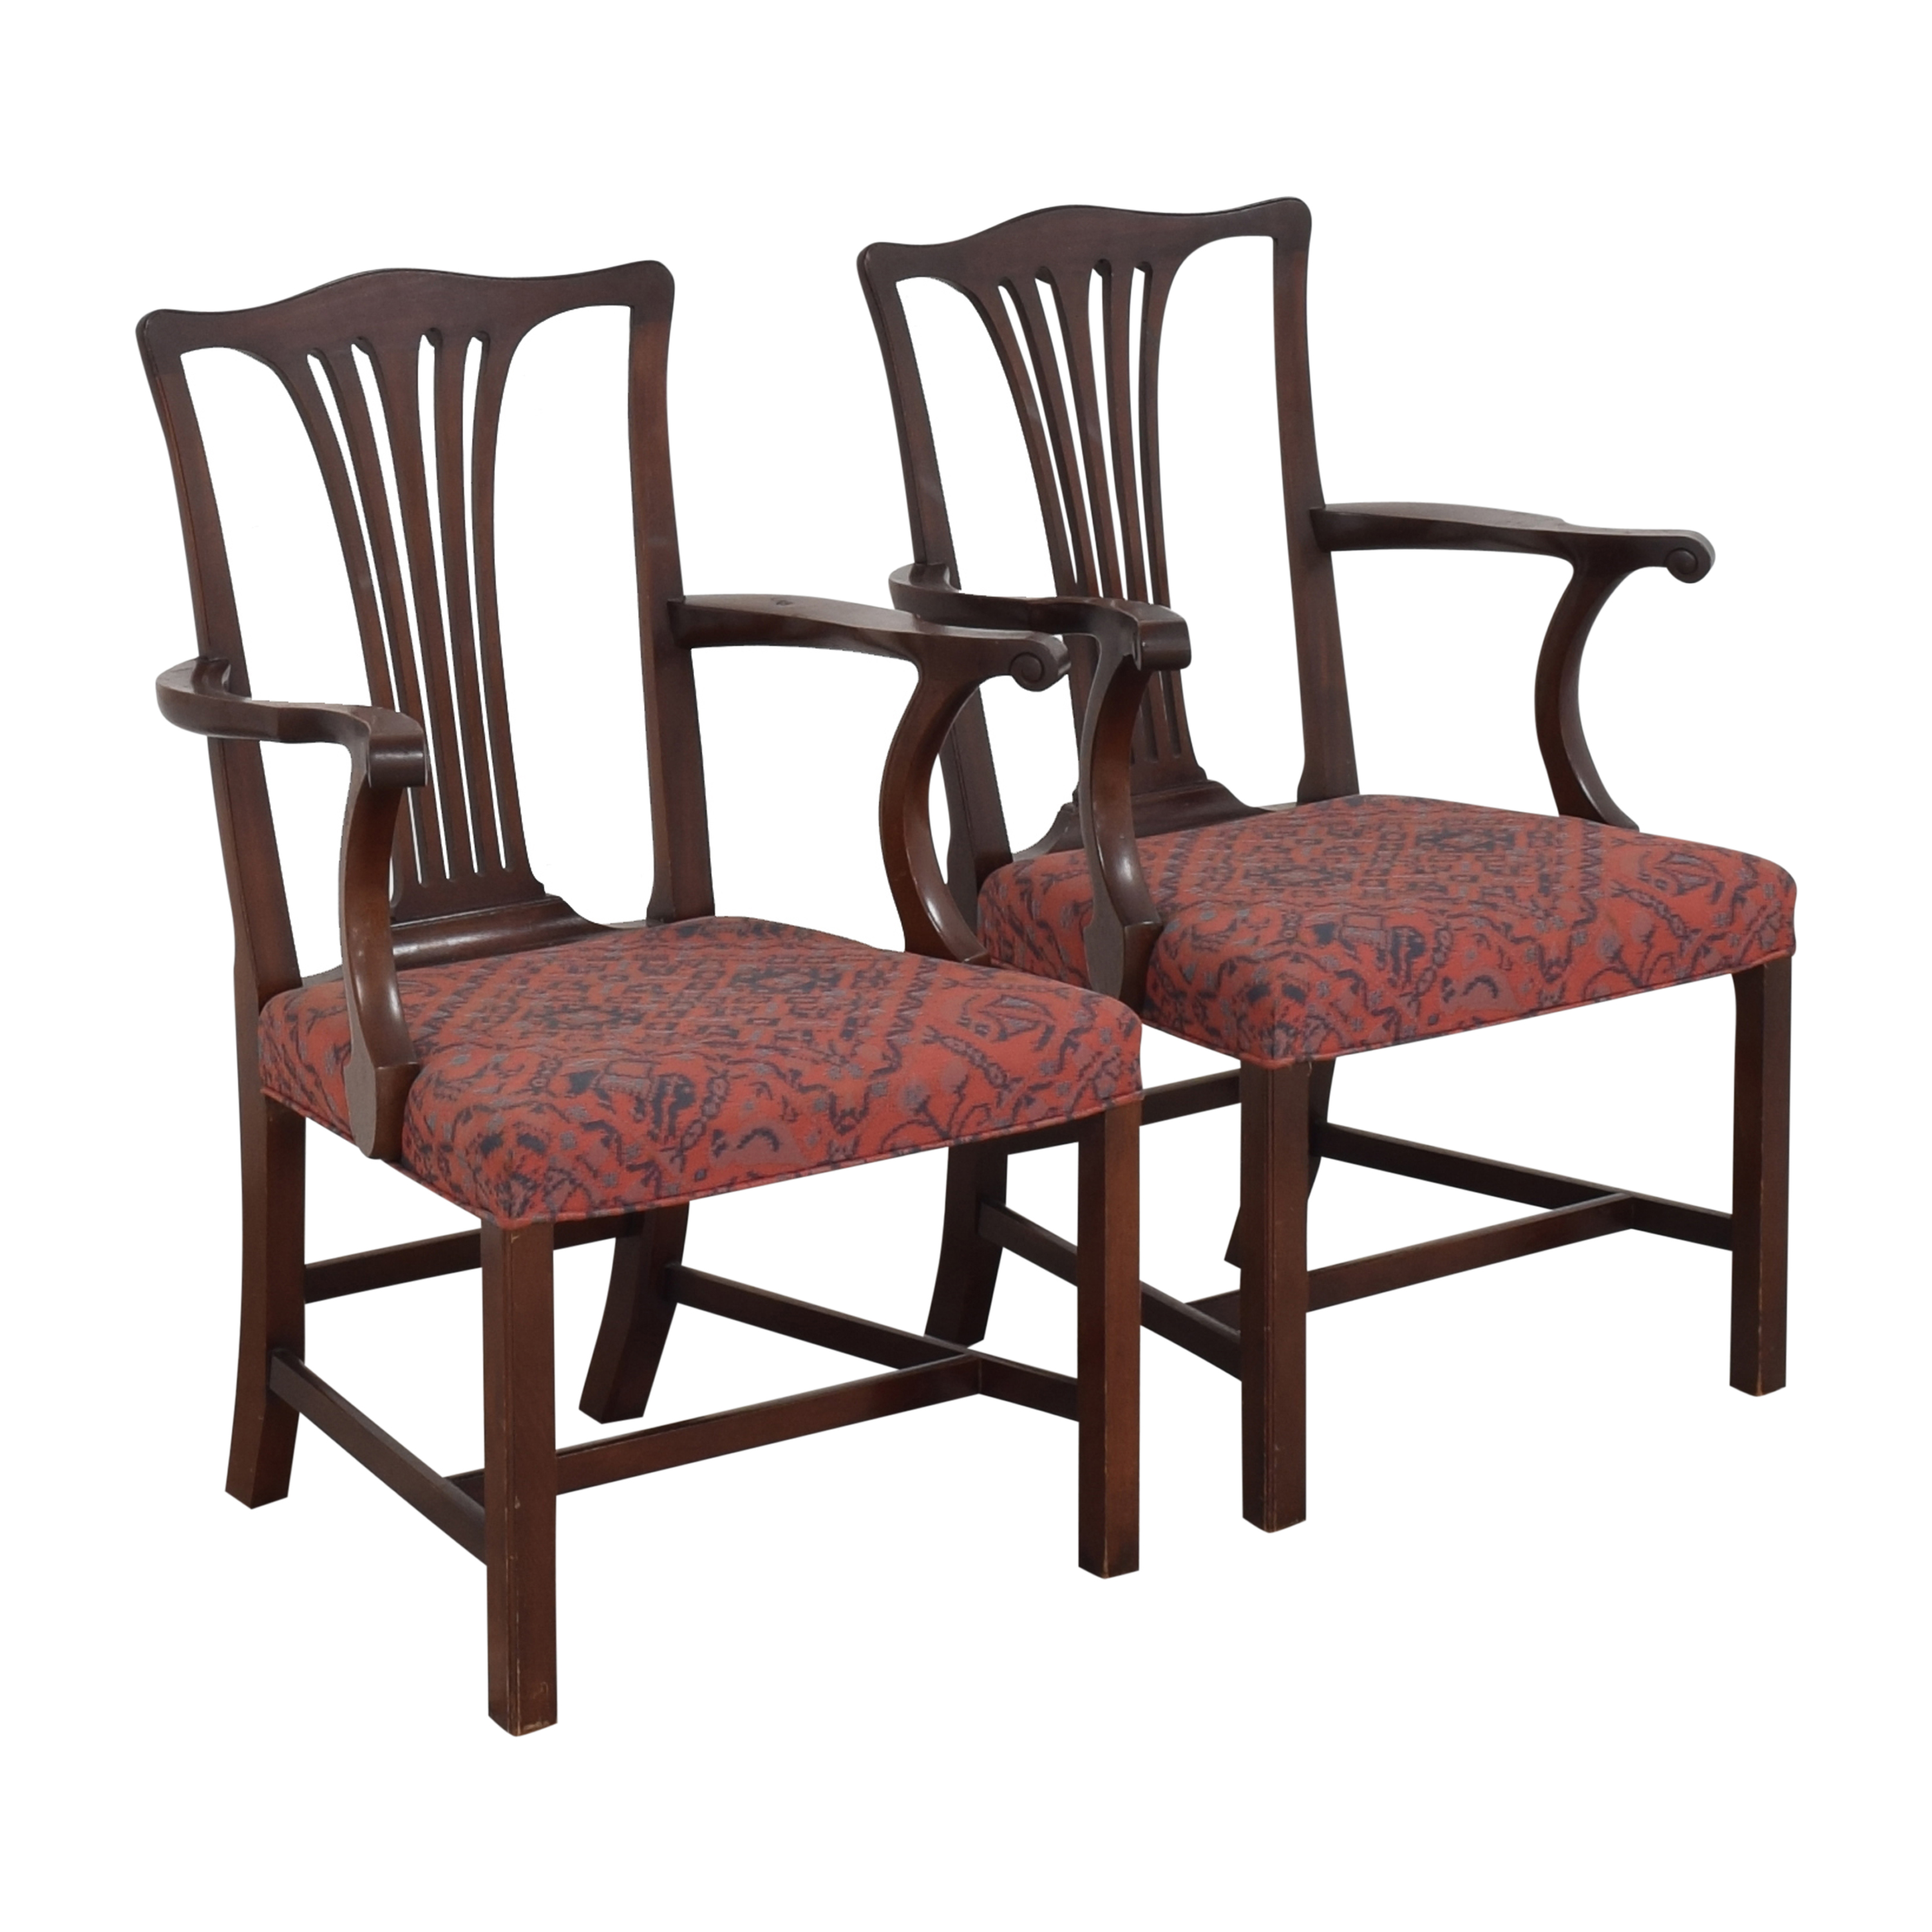 Wood & Hogan Country Chippendale Dining Arm Chairs sale